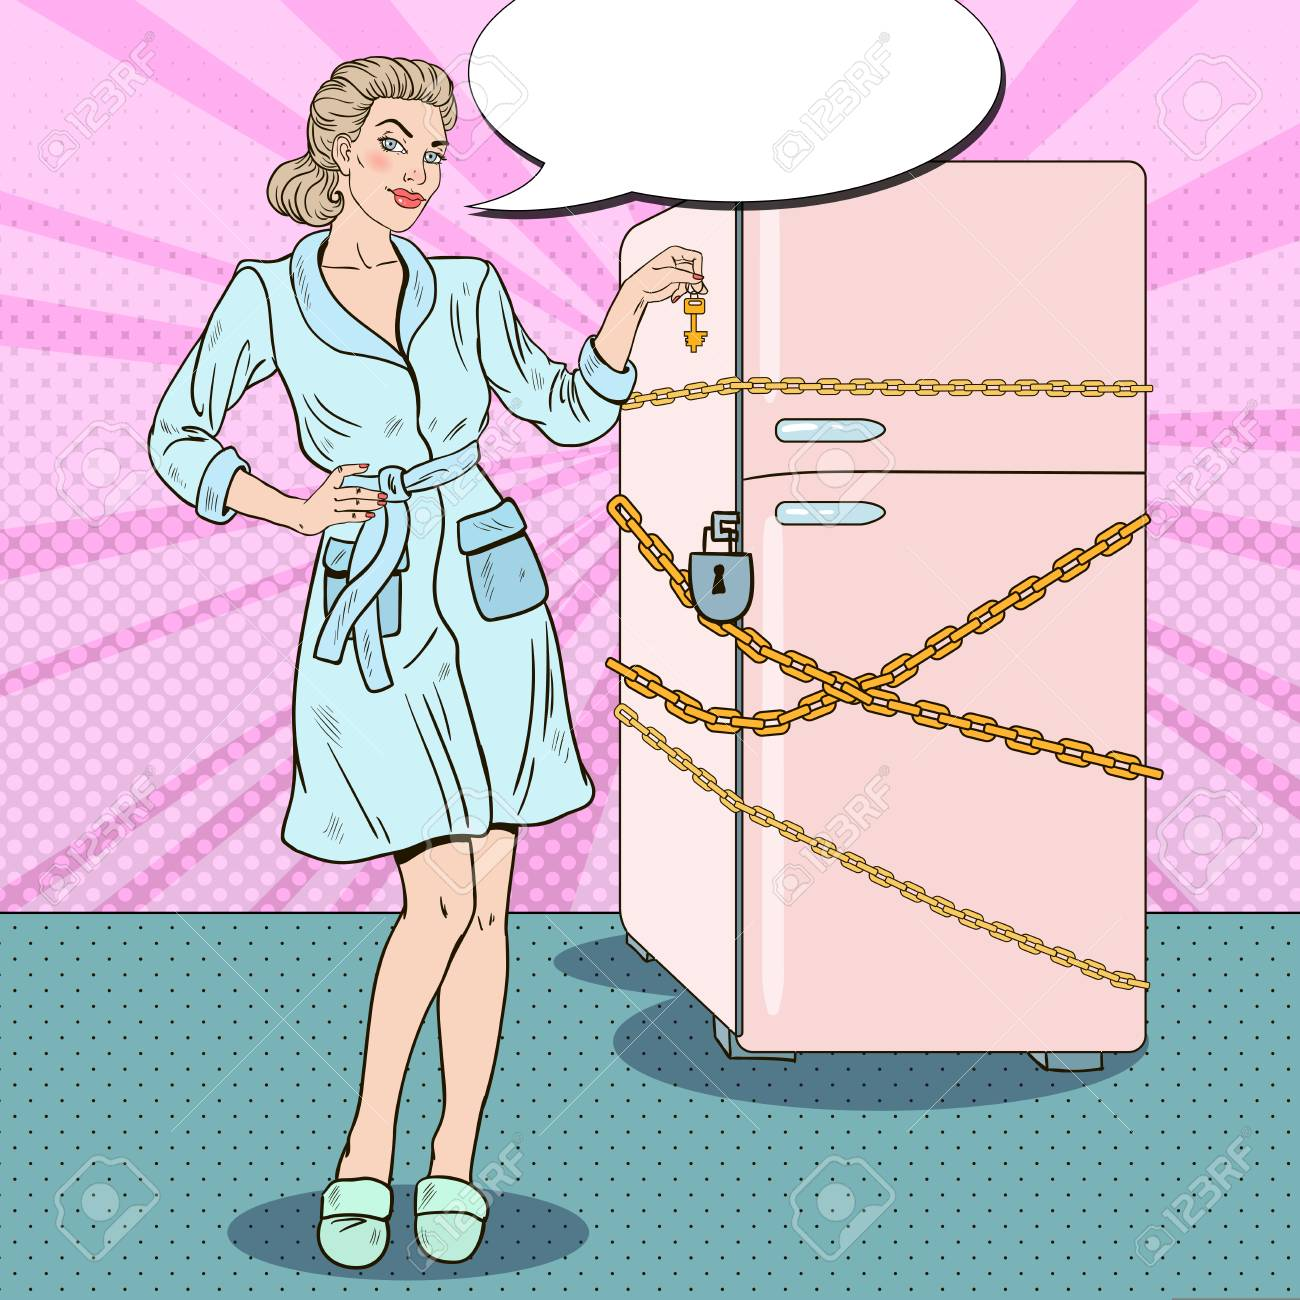 Pop Art Young Woman on Diet with Fridge Chain and Lock. Vector illustration - 72504403